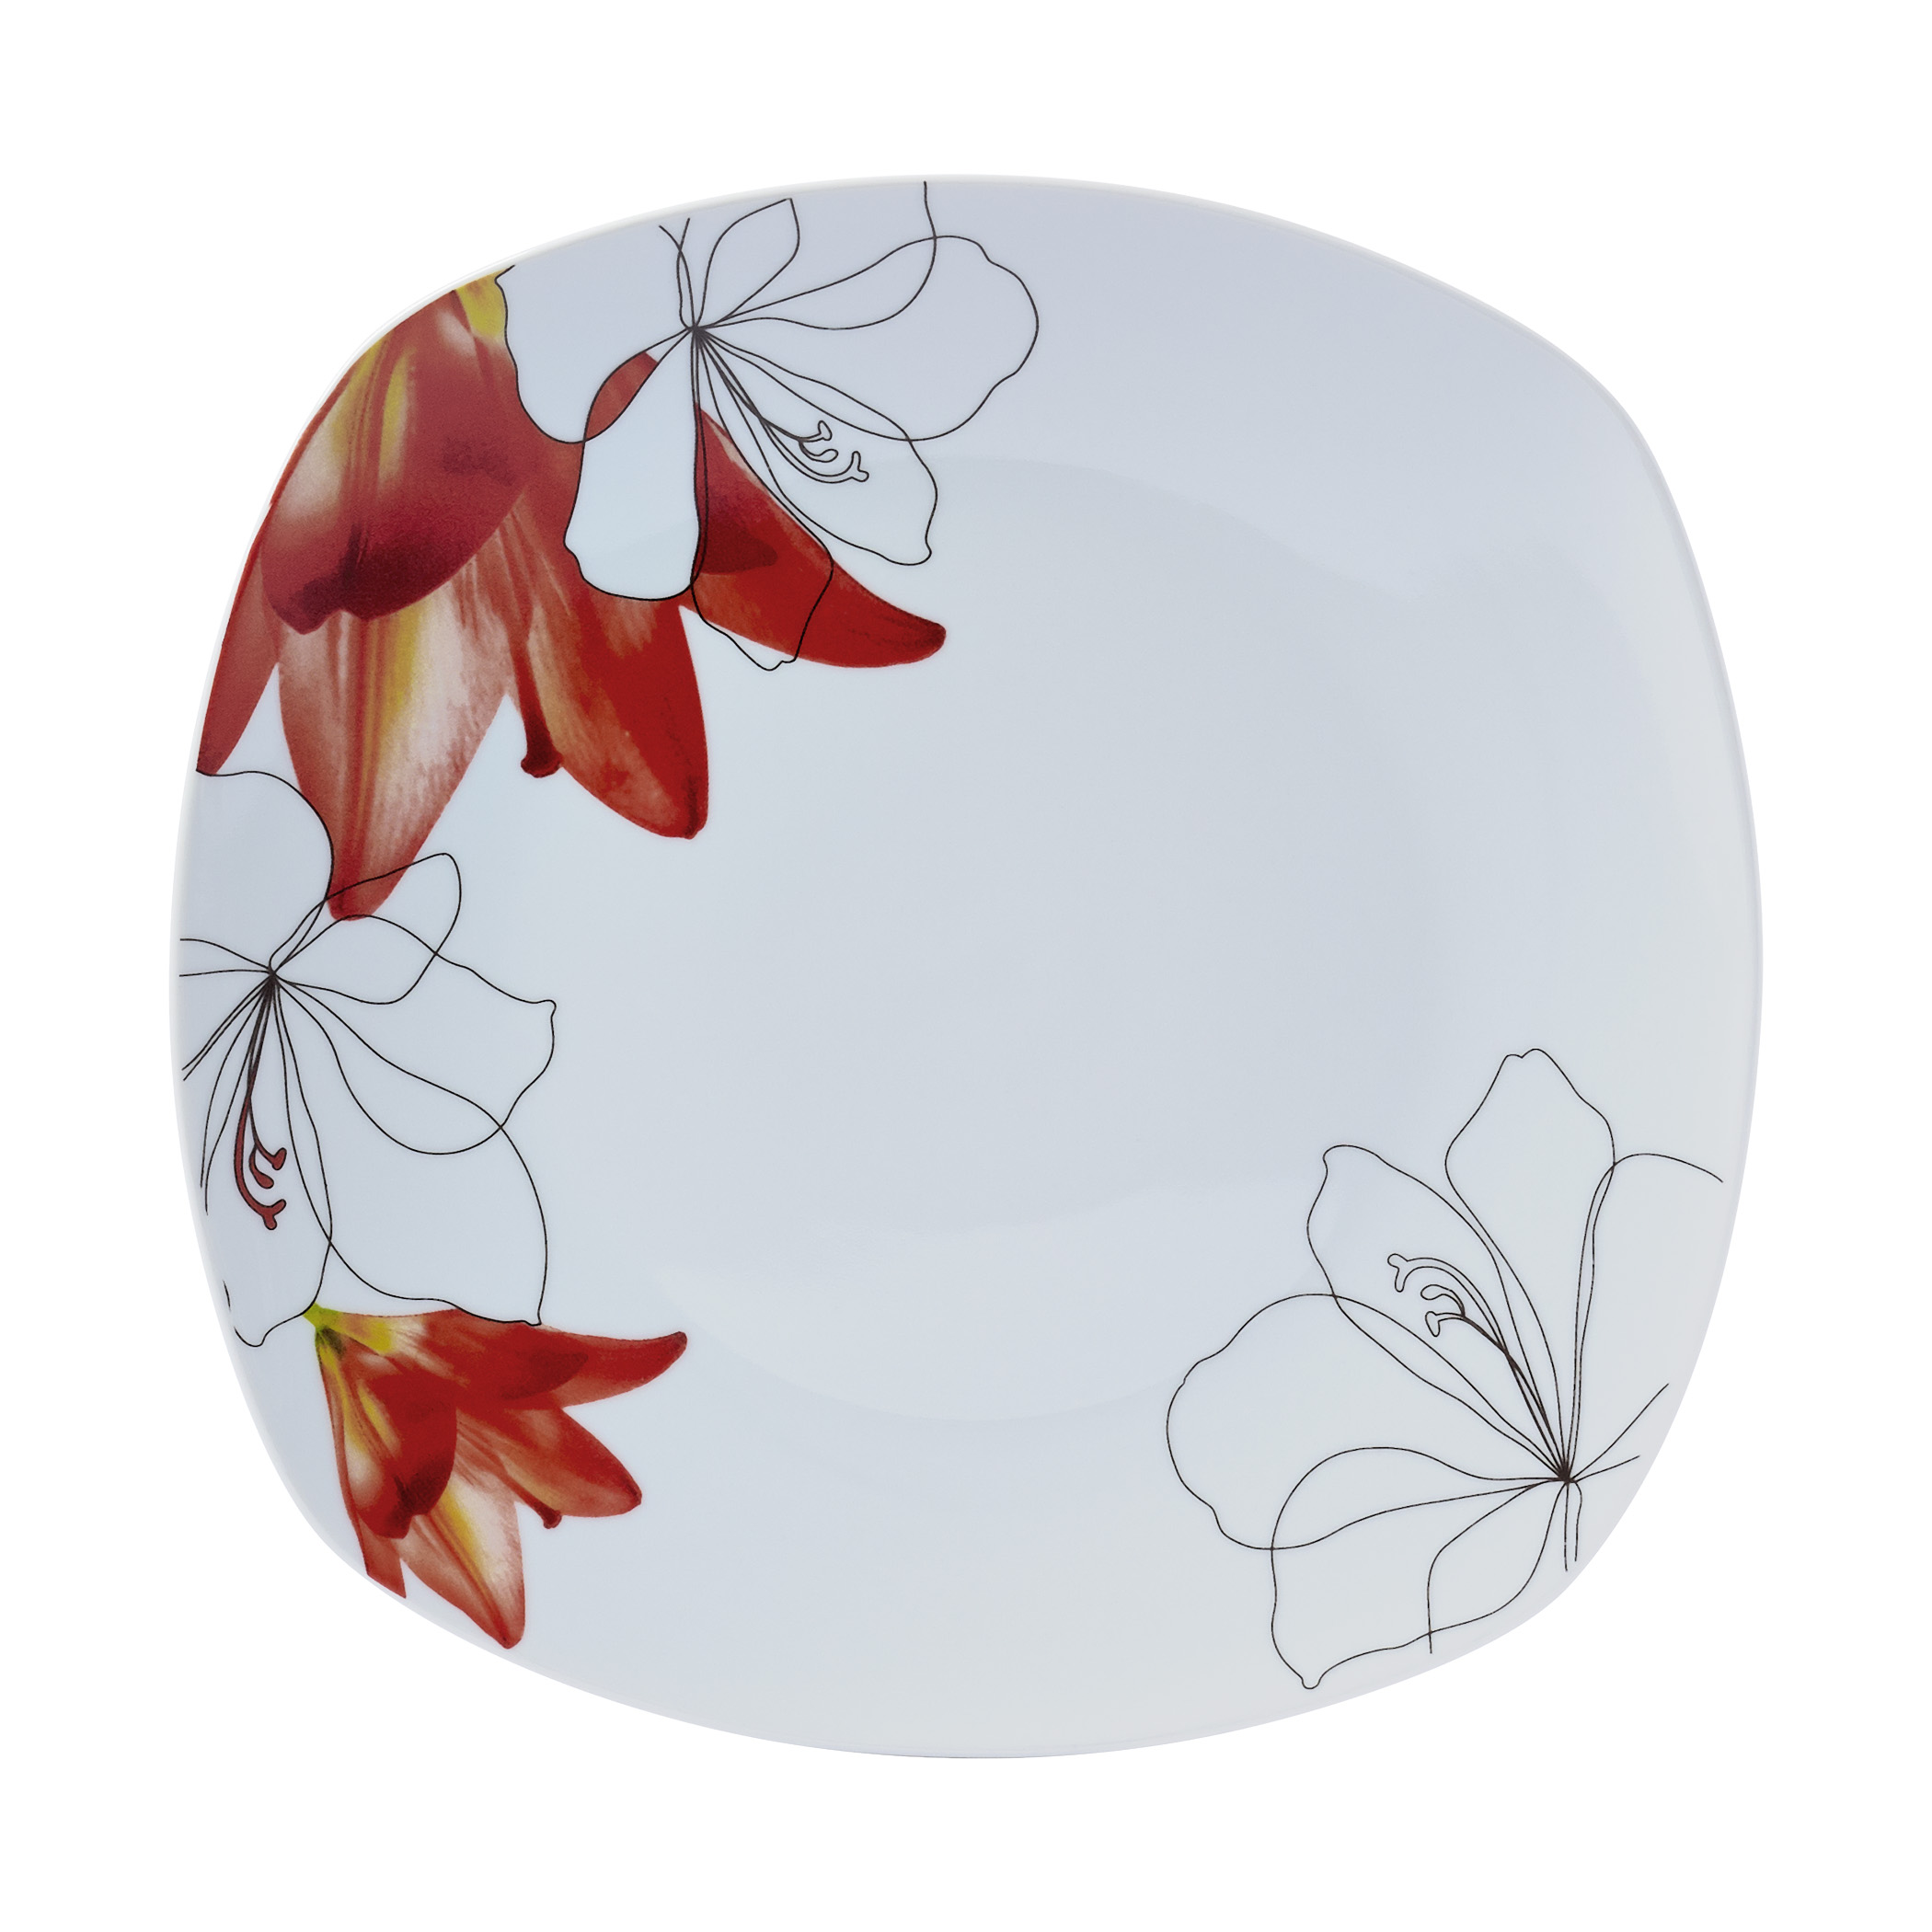 ... Tabletops Gallery · TTU T4260 EC 16 Piece Porcelain Dinnerware Set By  Tabletops Gallery_1 ...